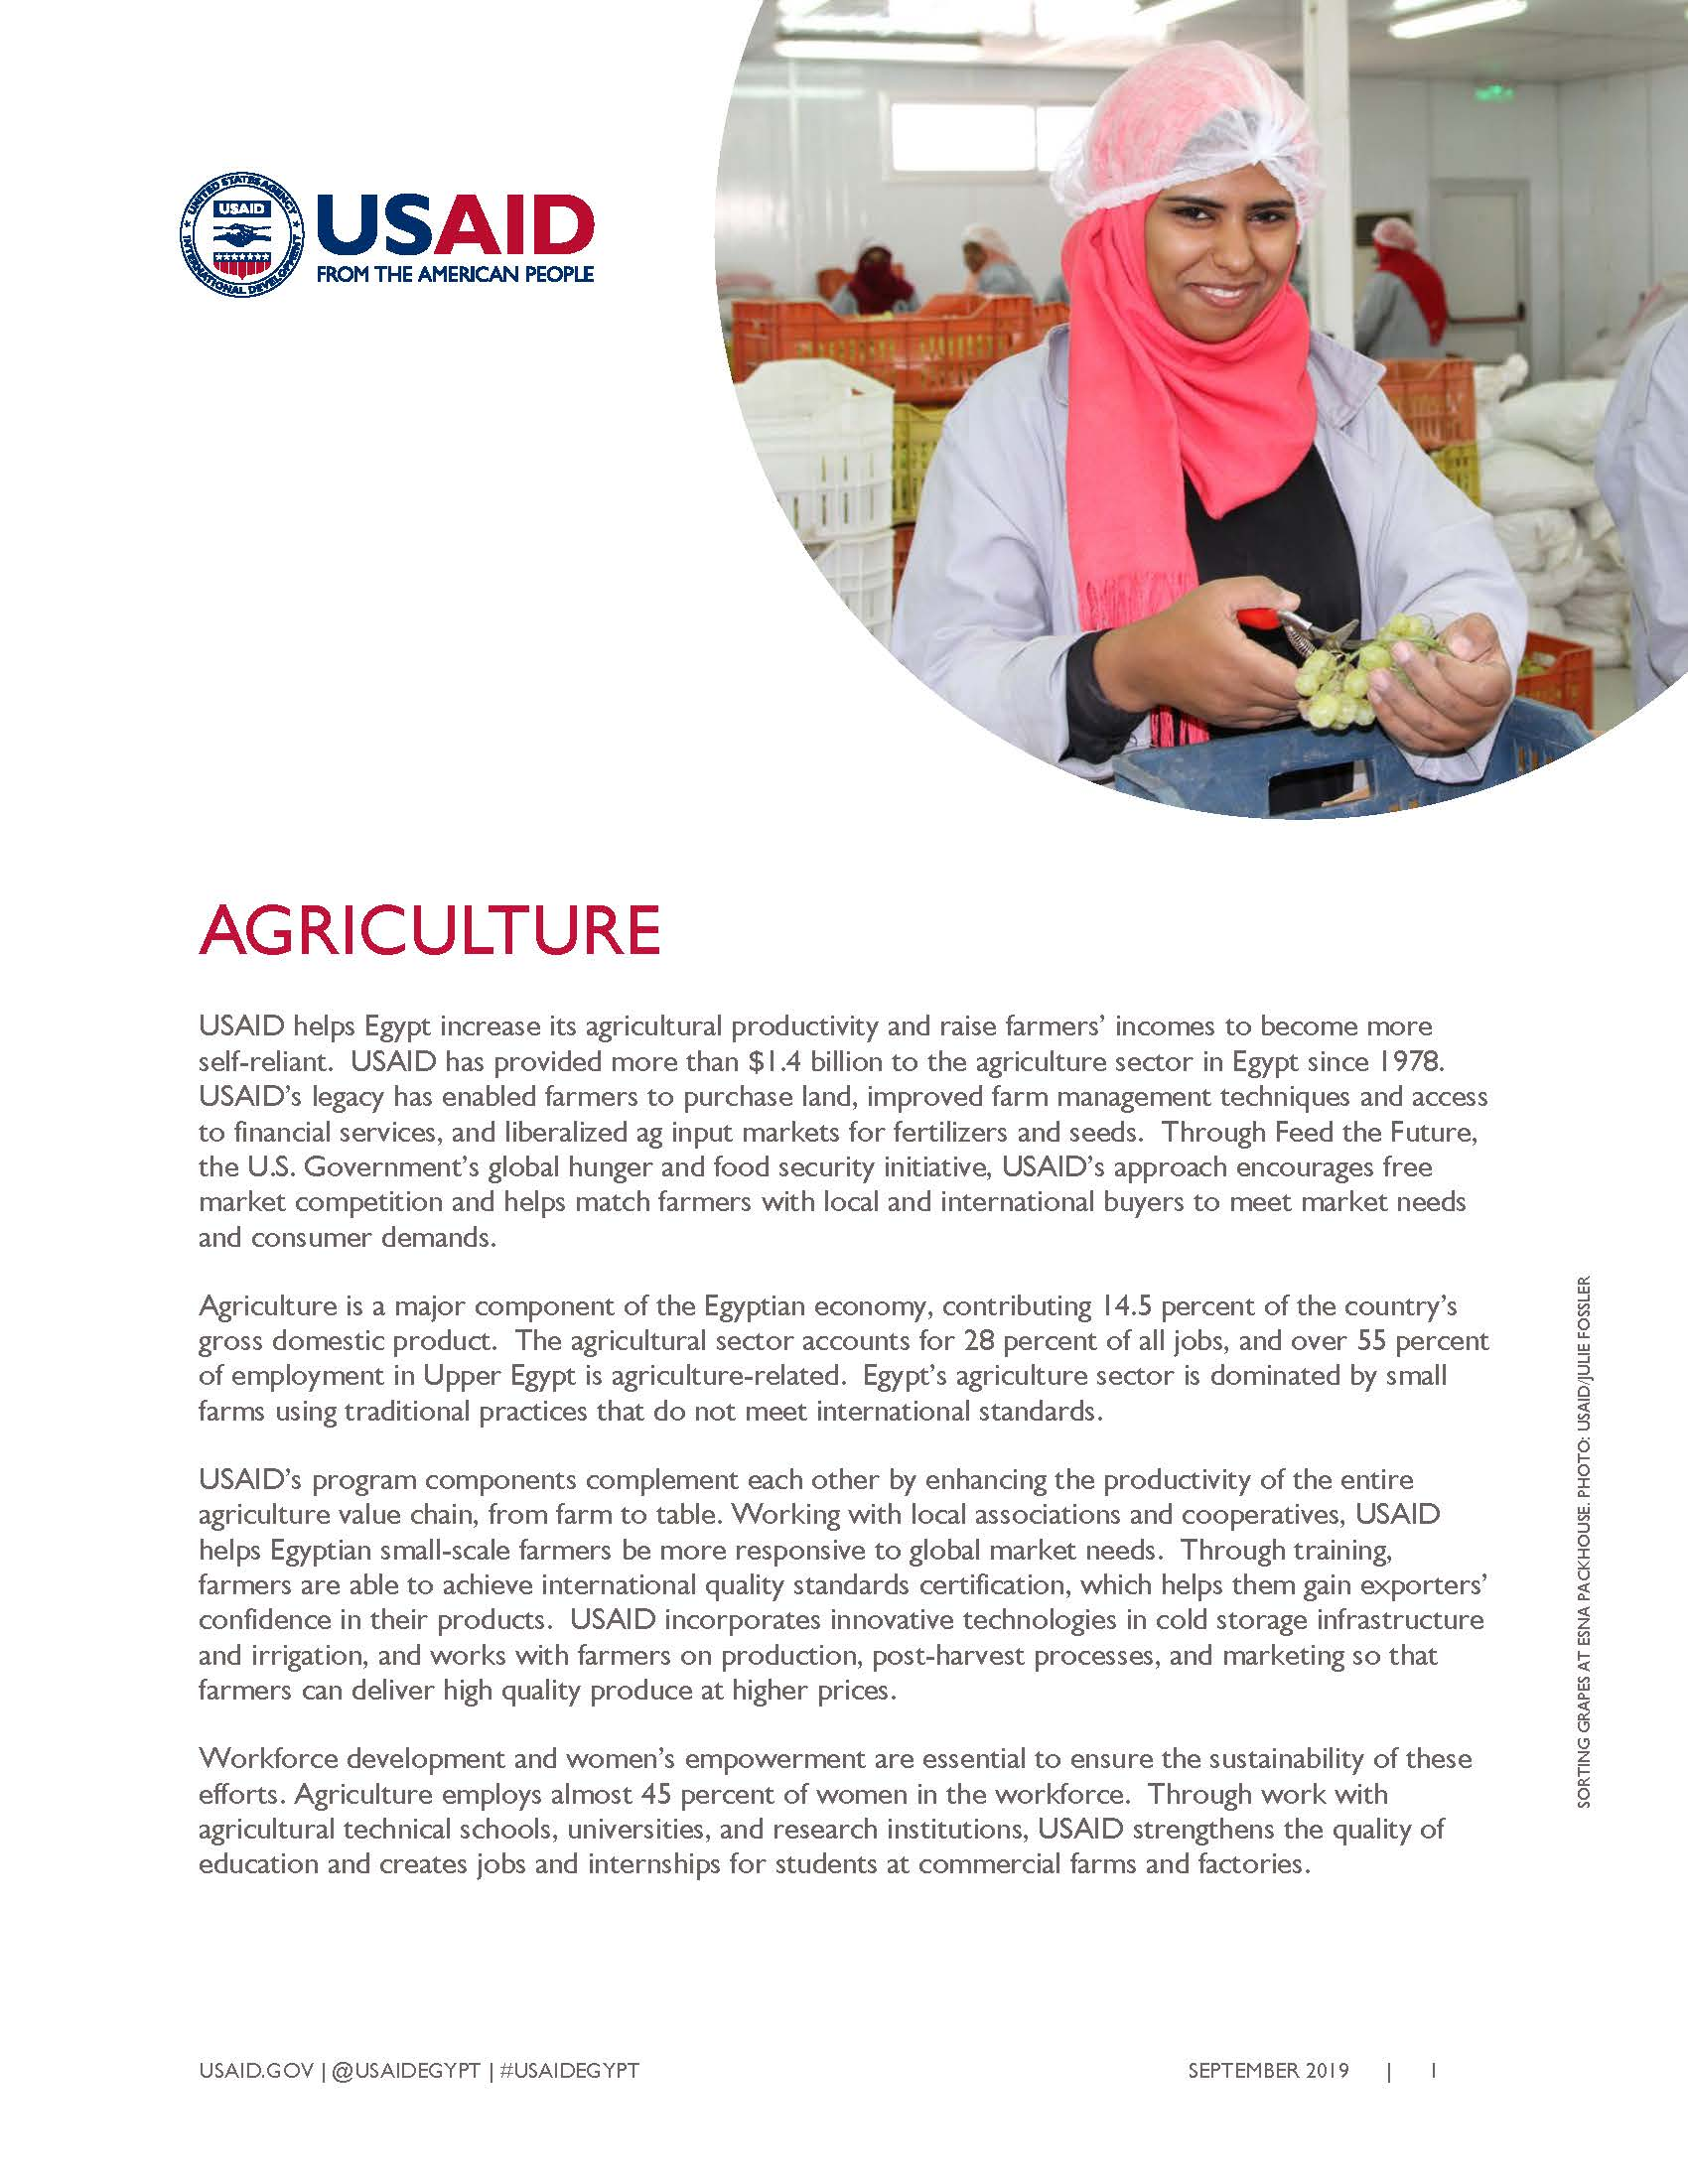 USAID/Egypt Agriculture Fact Sheet